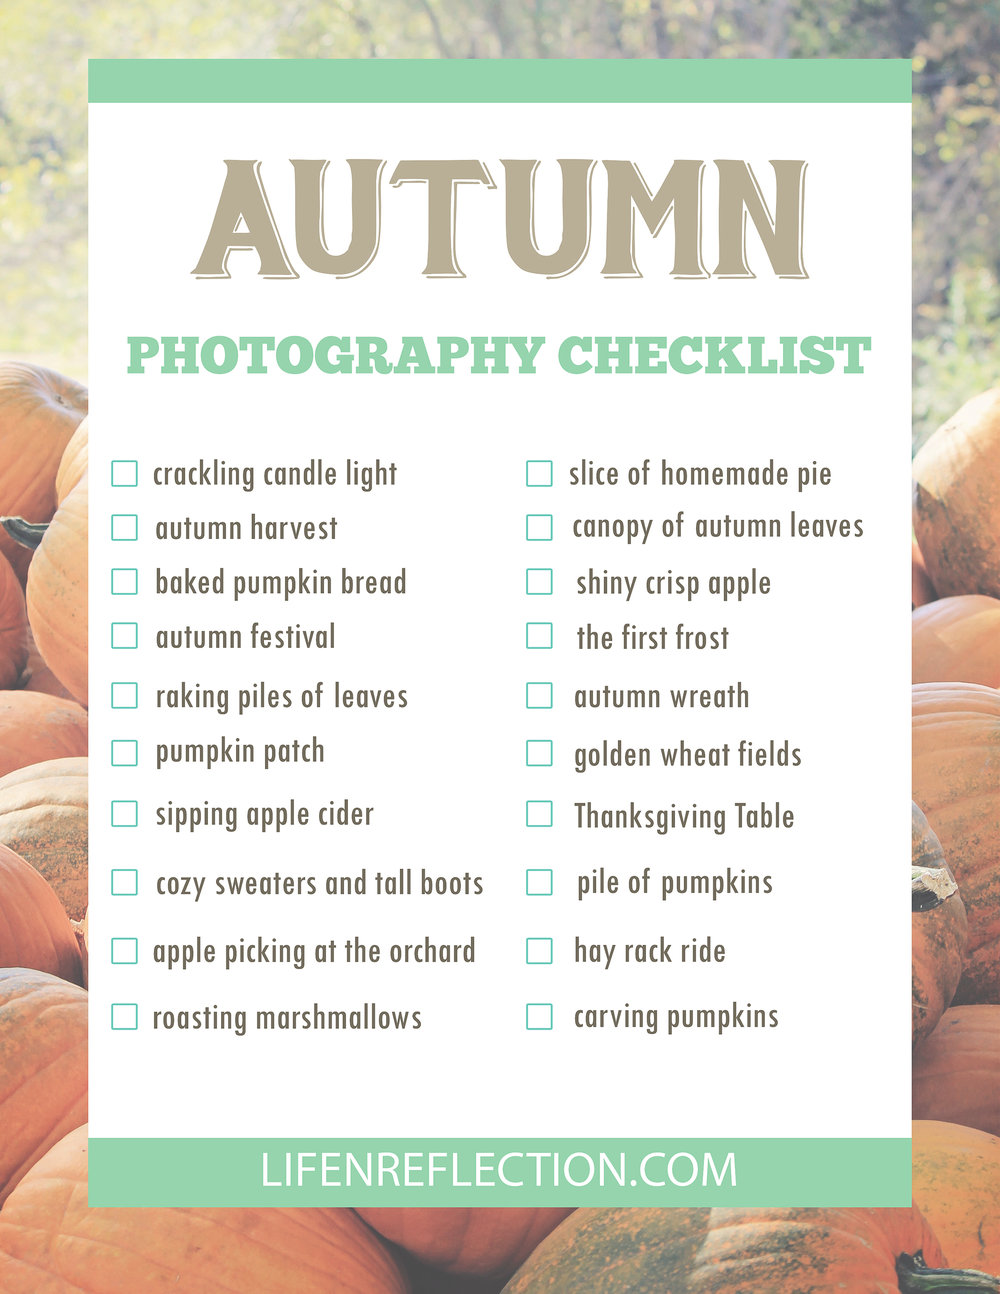 Life-n-Reflection | Autumn Photography Checklist